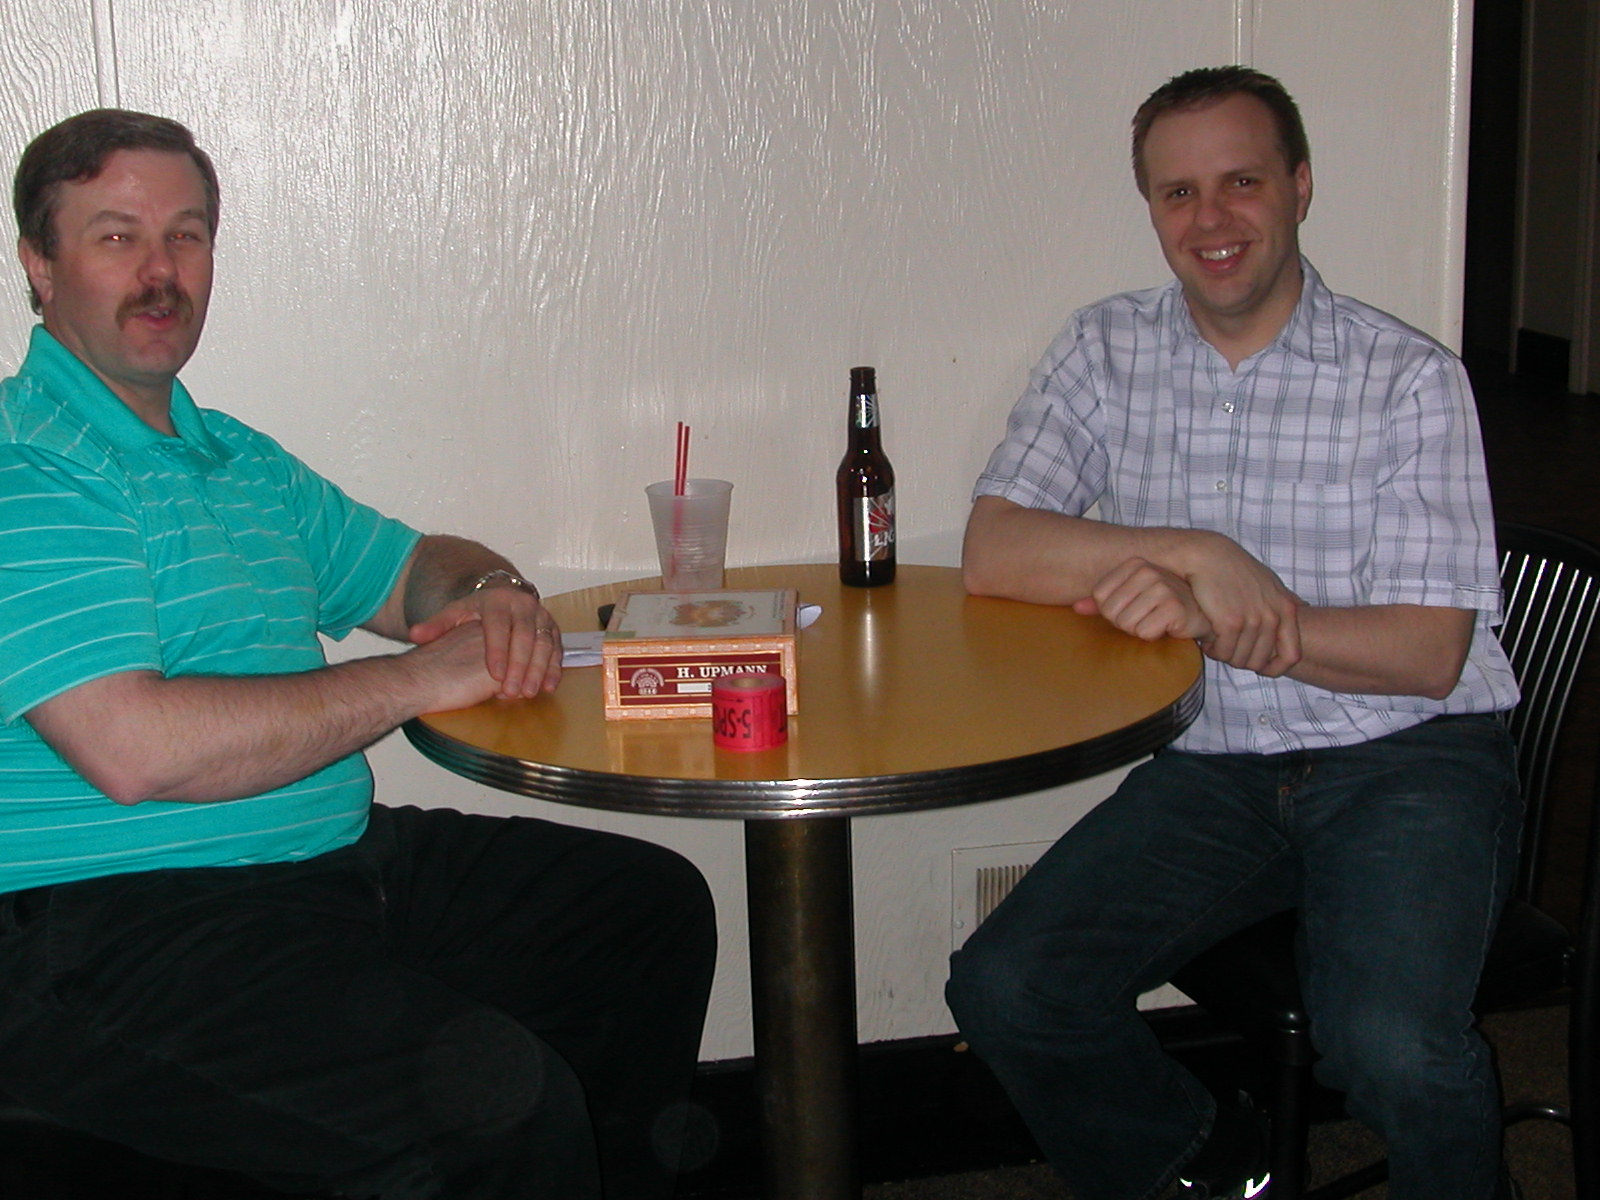 Corey (KD8SZZ) and Jason (KD8UCP) at the cashier's table.